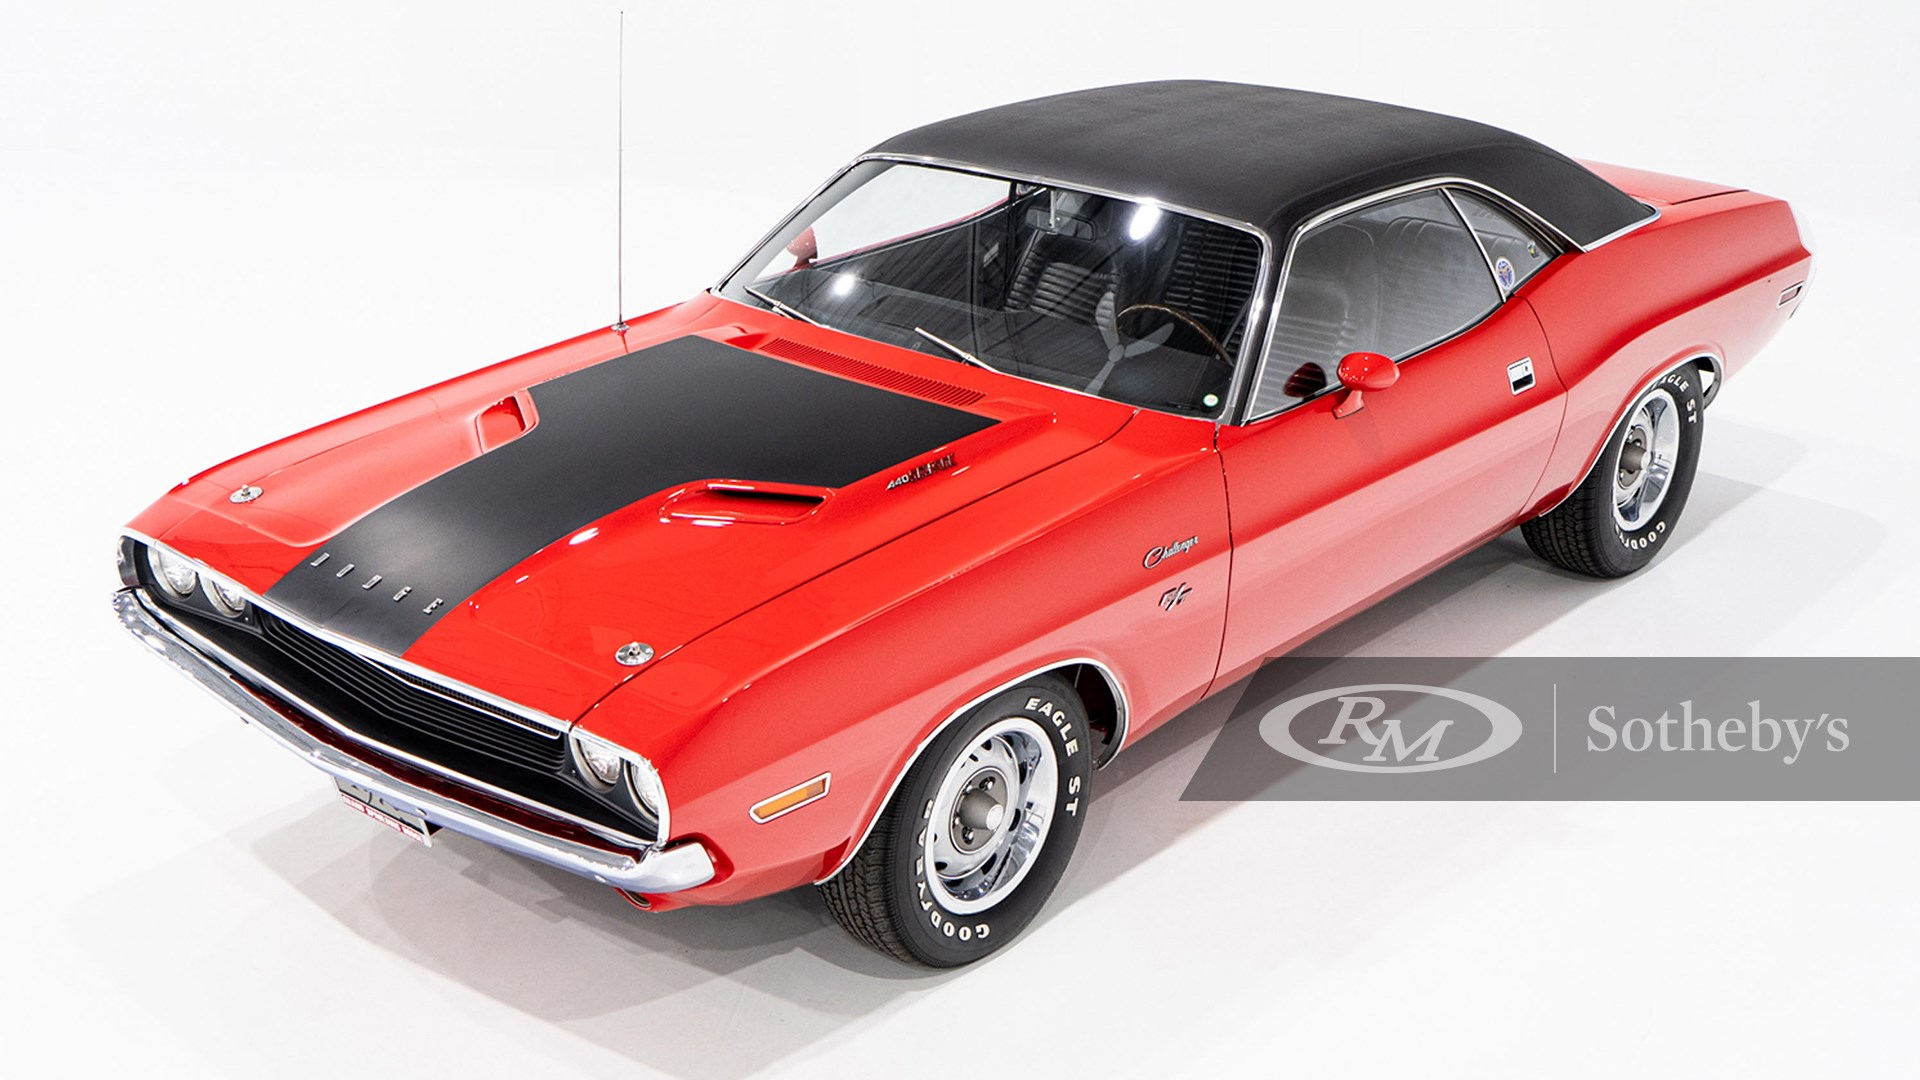 1970 Dodge Challenger R/T available at RM Sotheby's Online Only Open Roads April Auction 2021